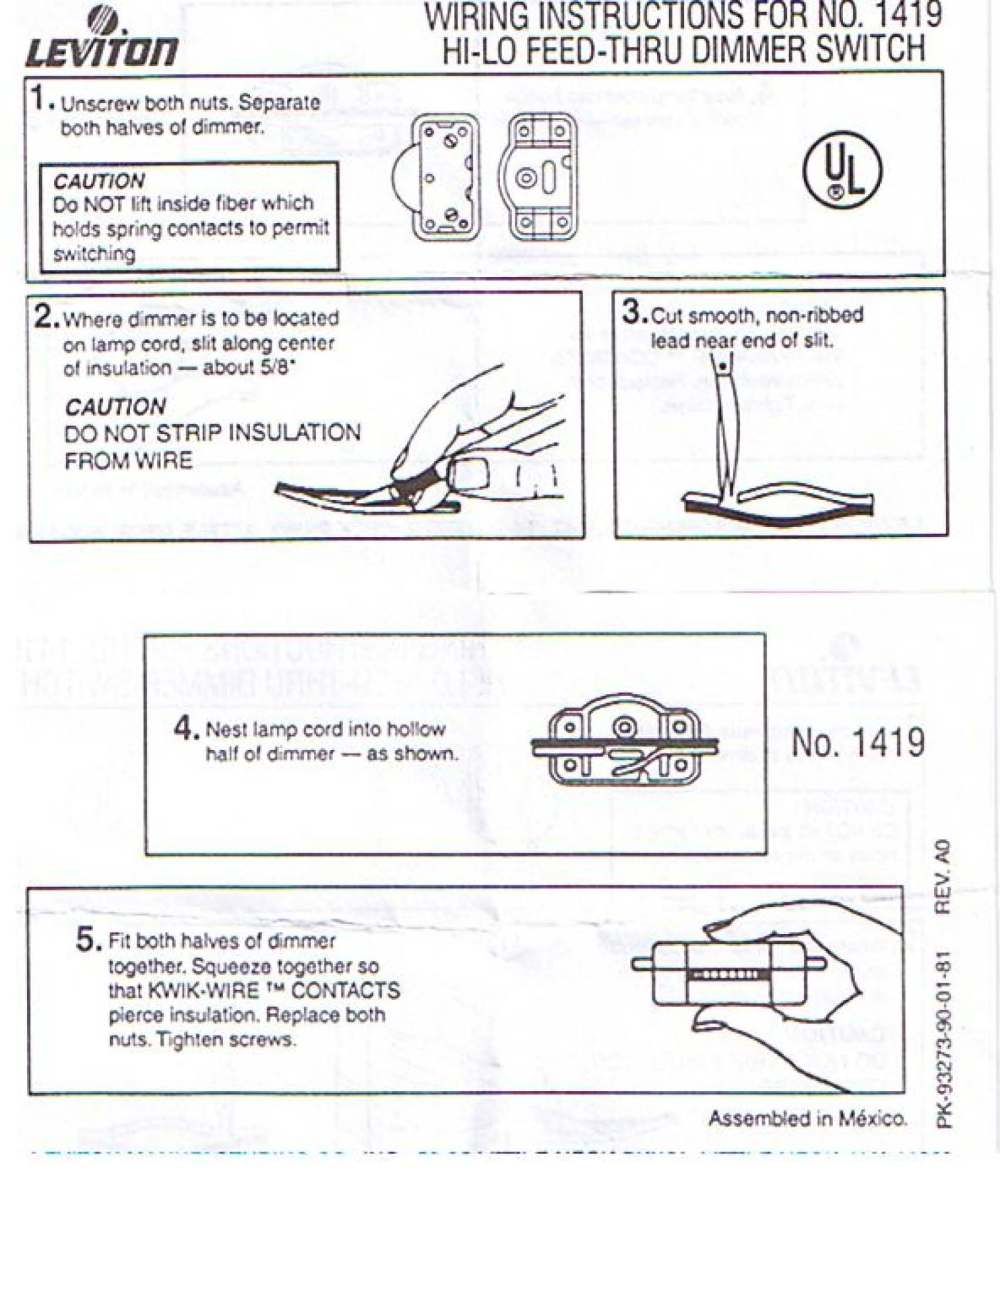 medium resolution of rotary on off lamp cord switch t rated neat easy to install no stripping of wires u l csa leviton brand find wiring instructions here